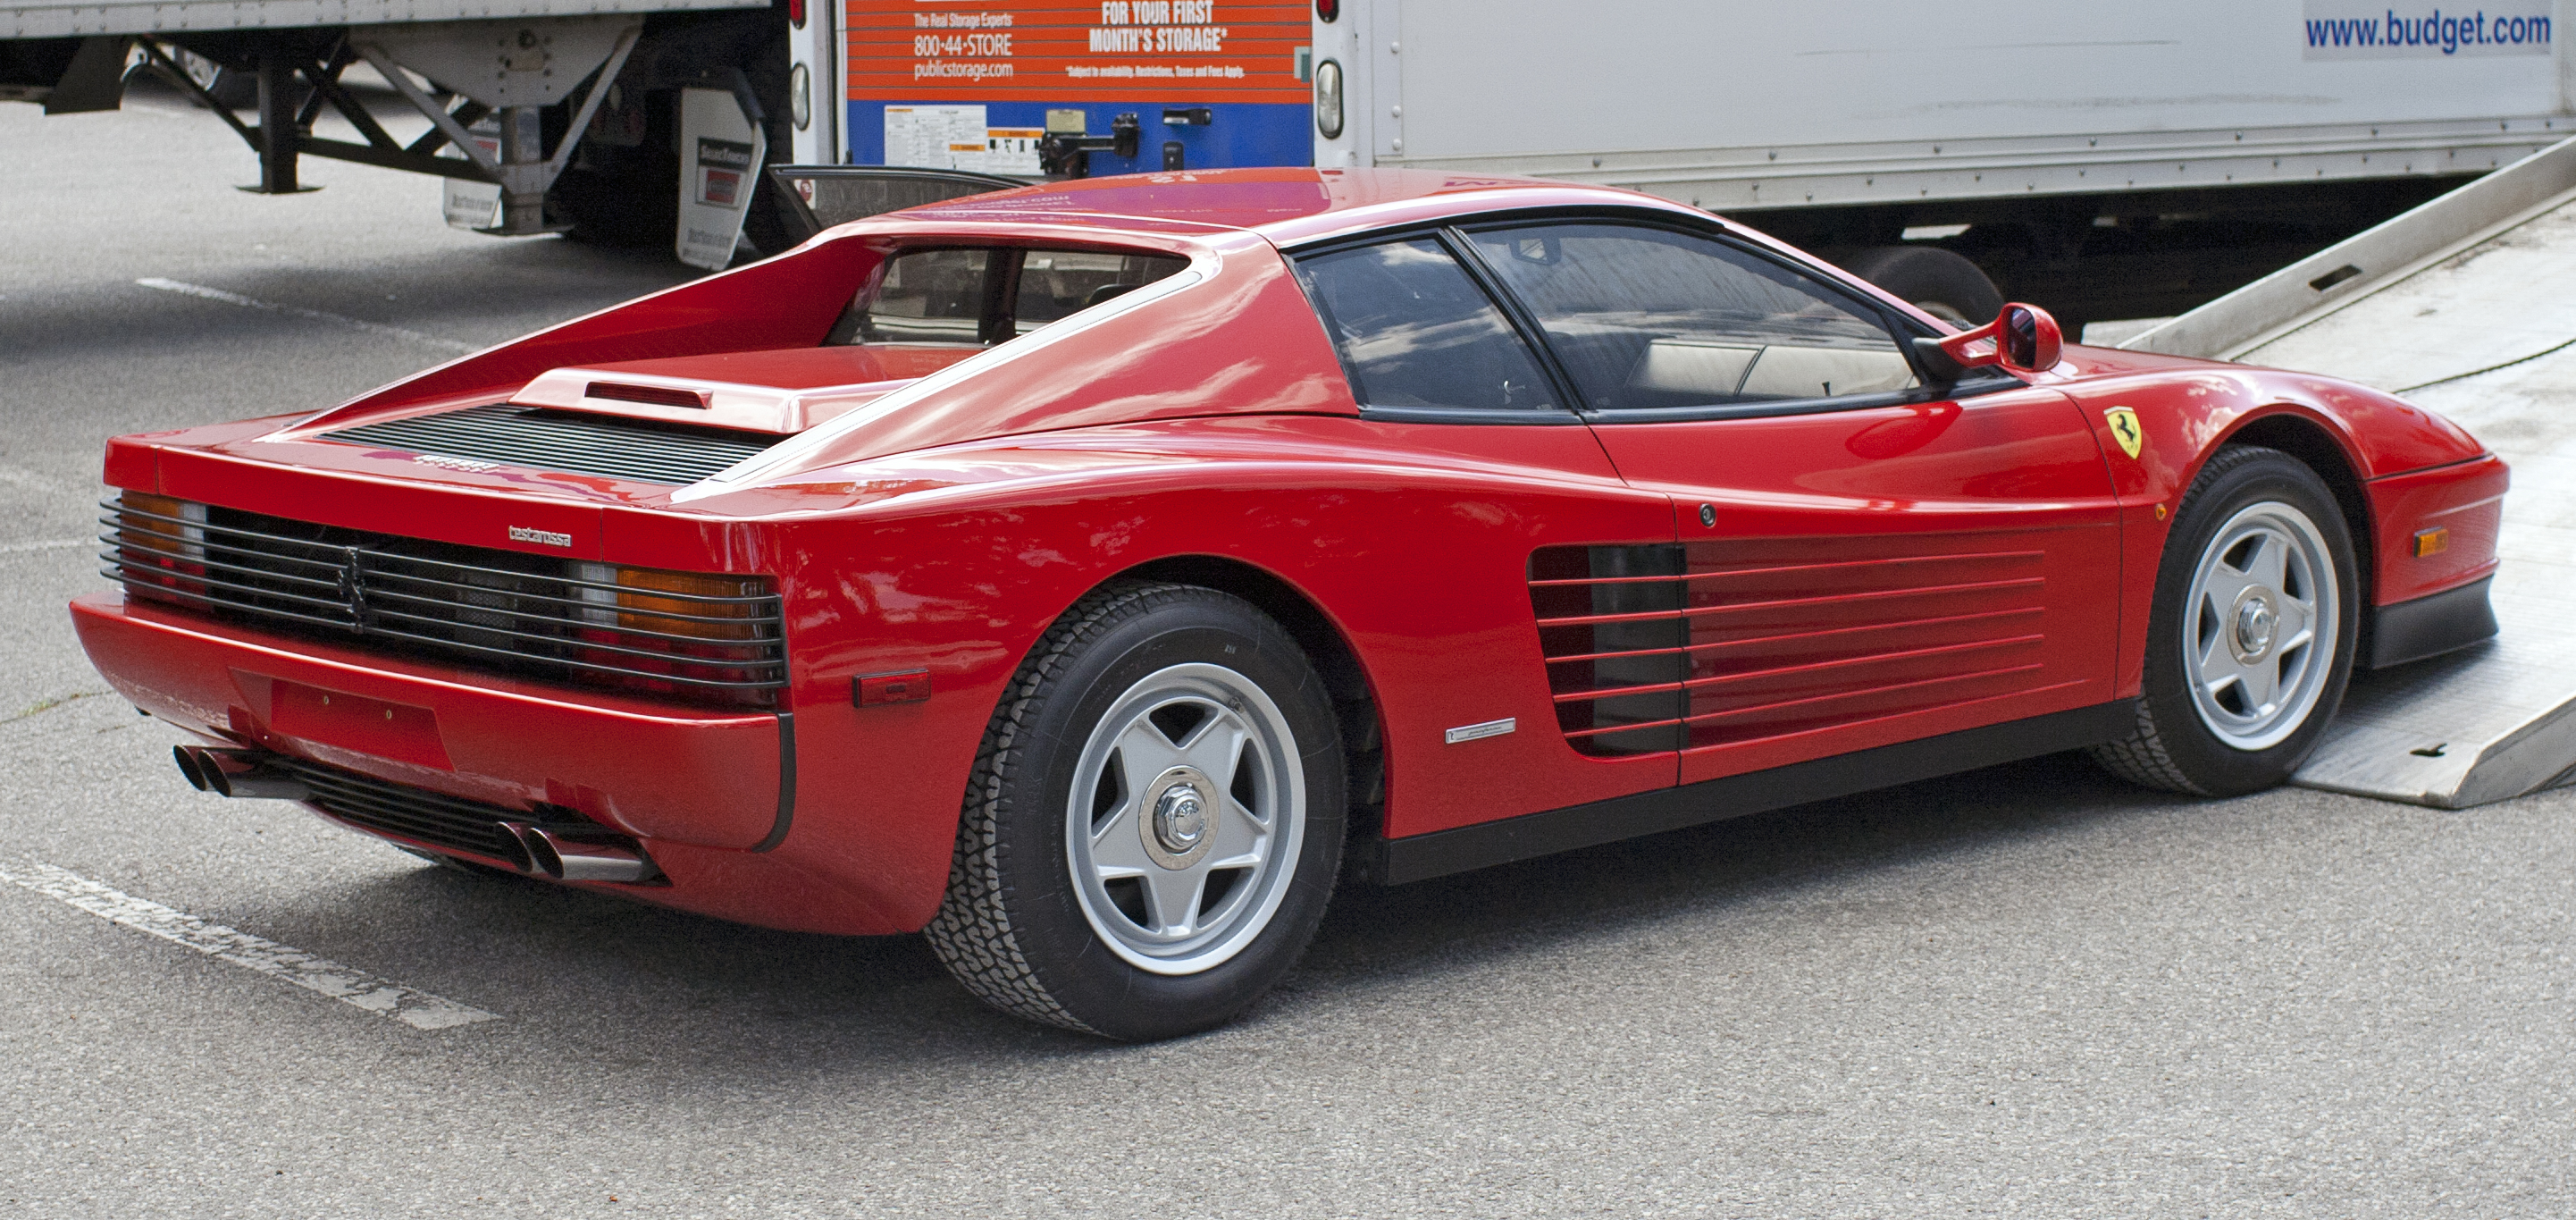 File 1986 Ferrari Testarossa Being Unloaded Jpg